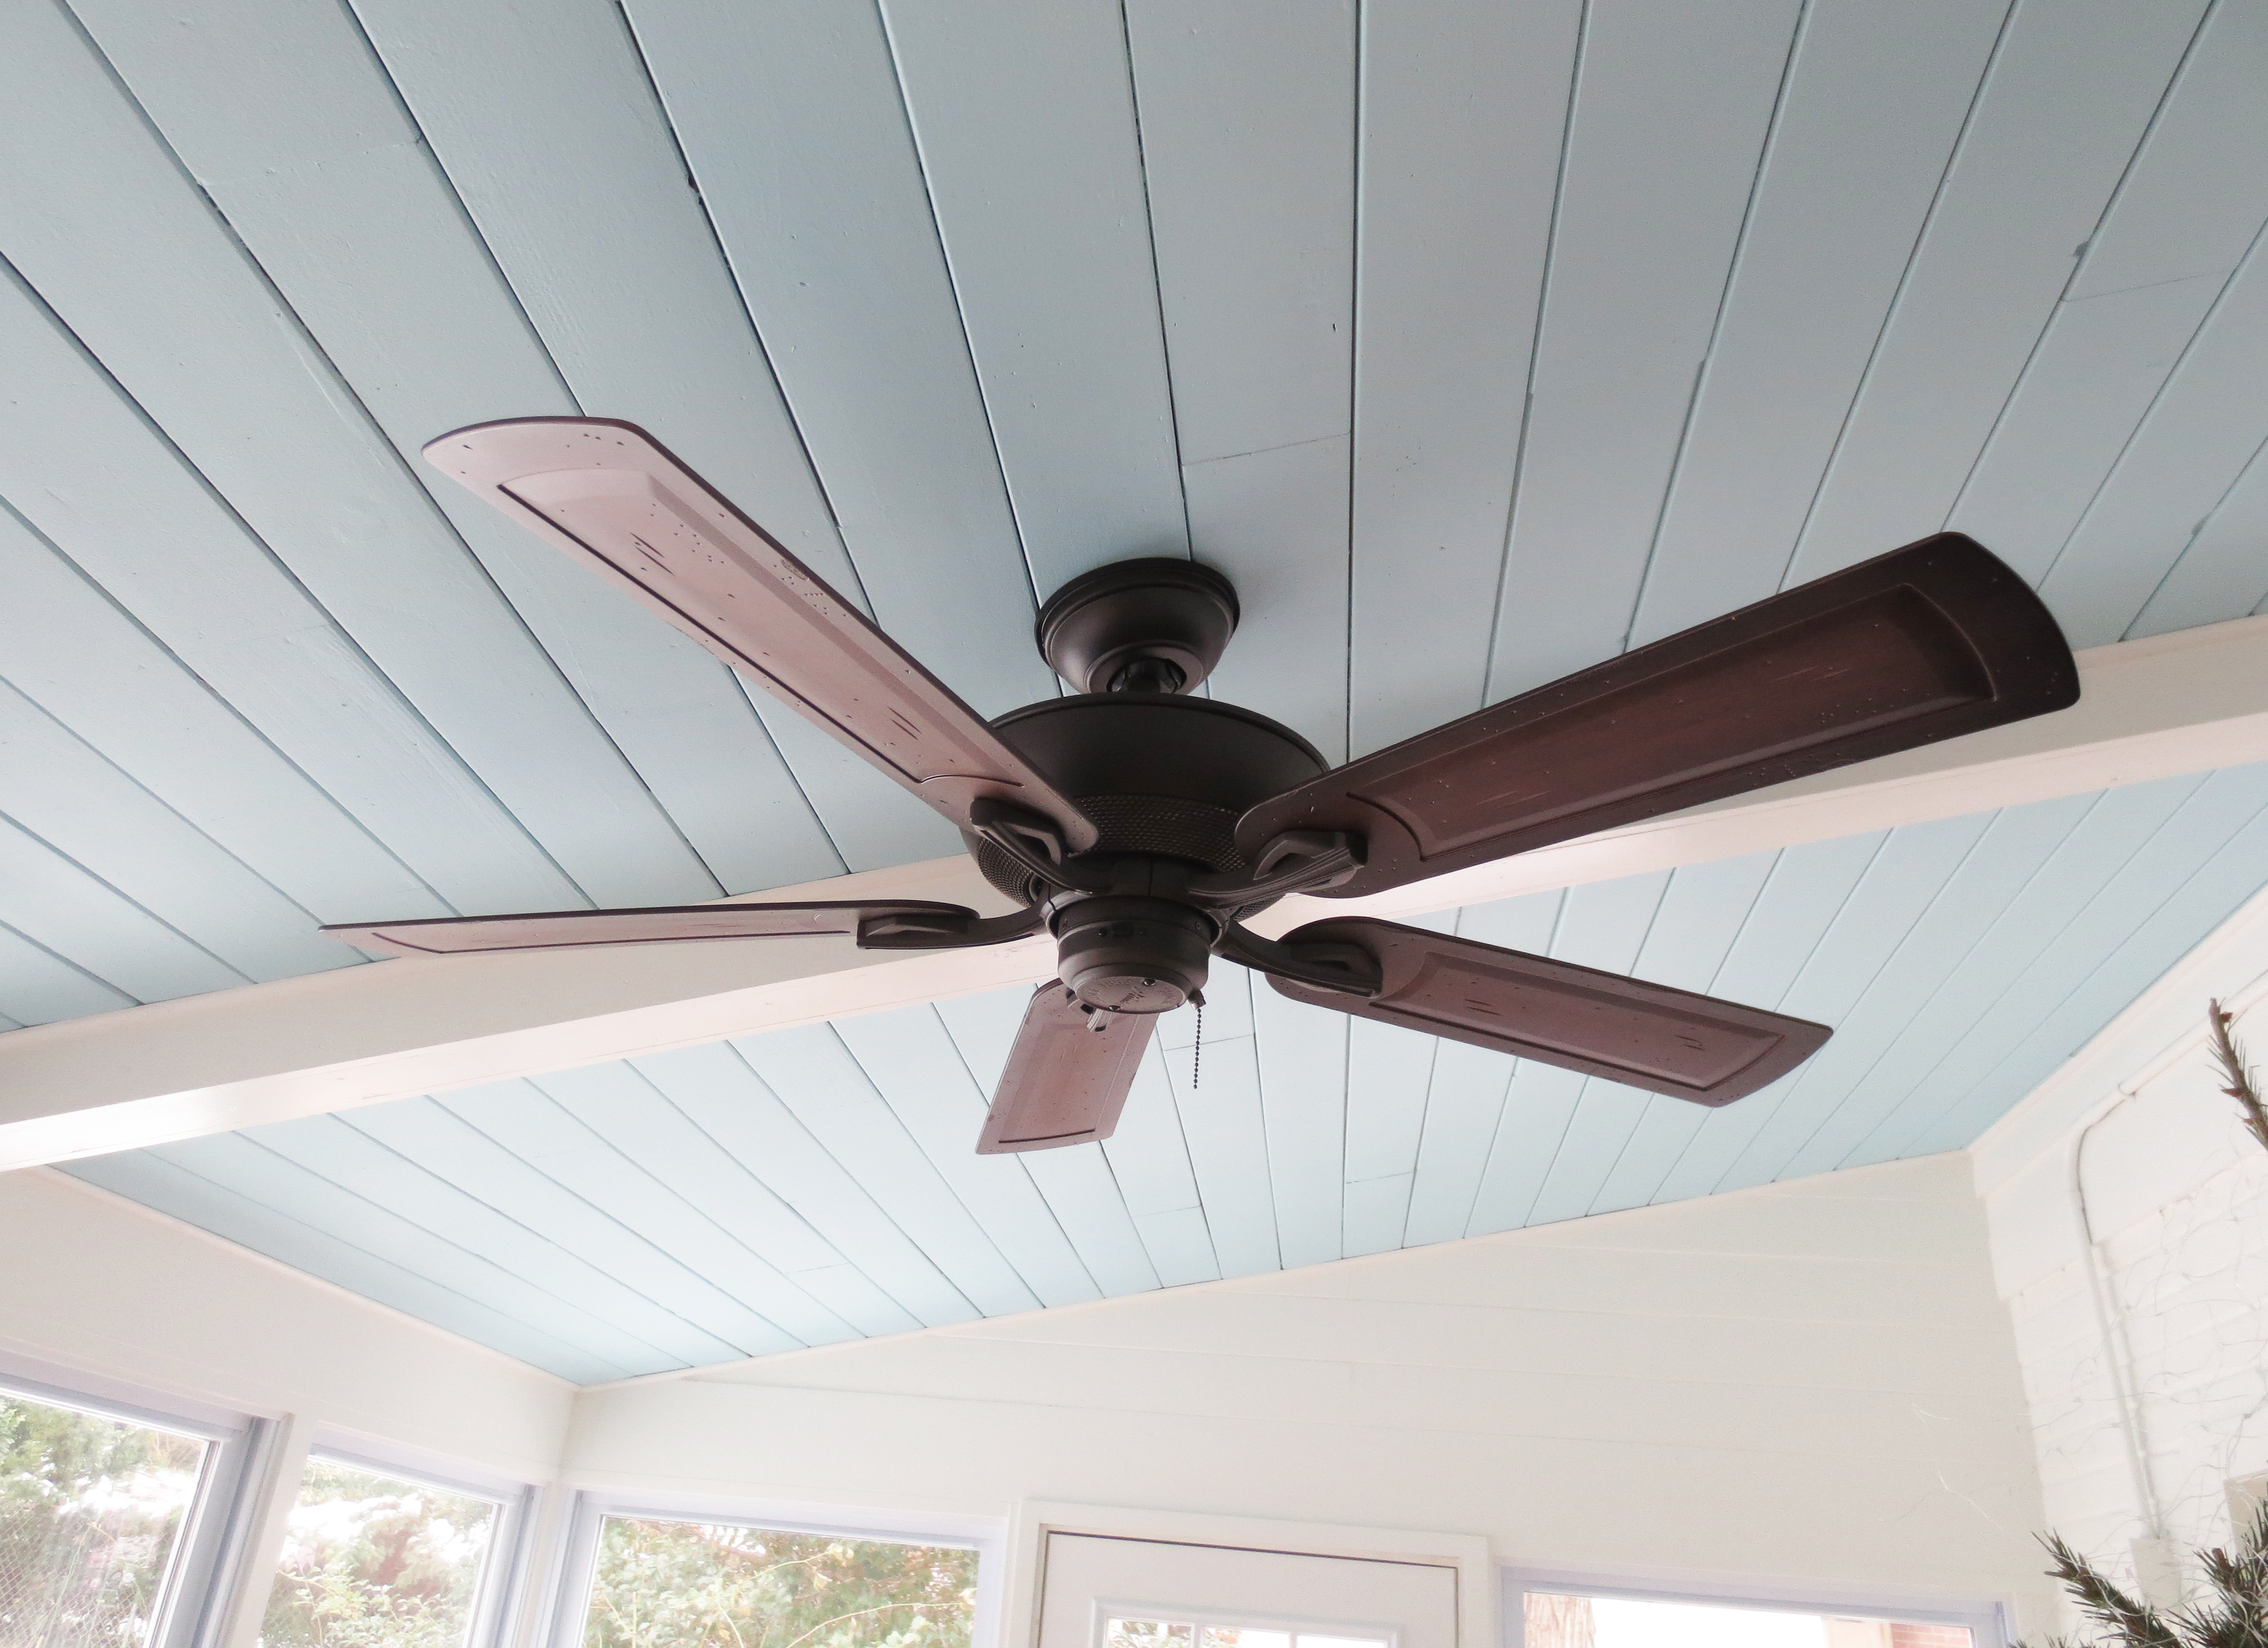 Hunter ceiling fan light went out : Were you raised in a barn threenineohfive